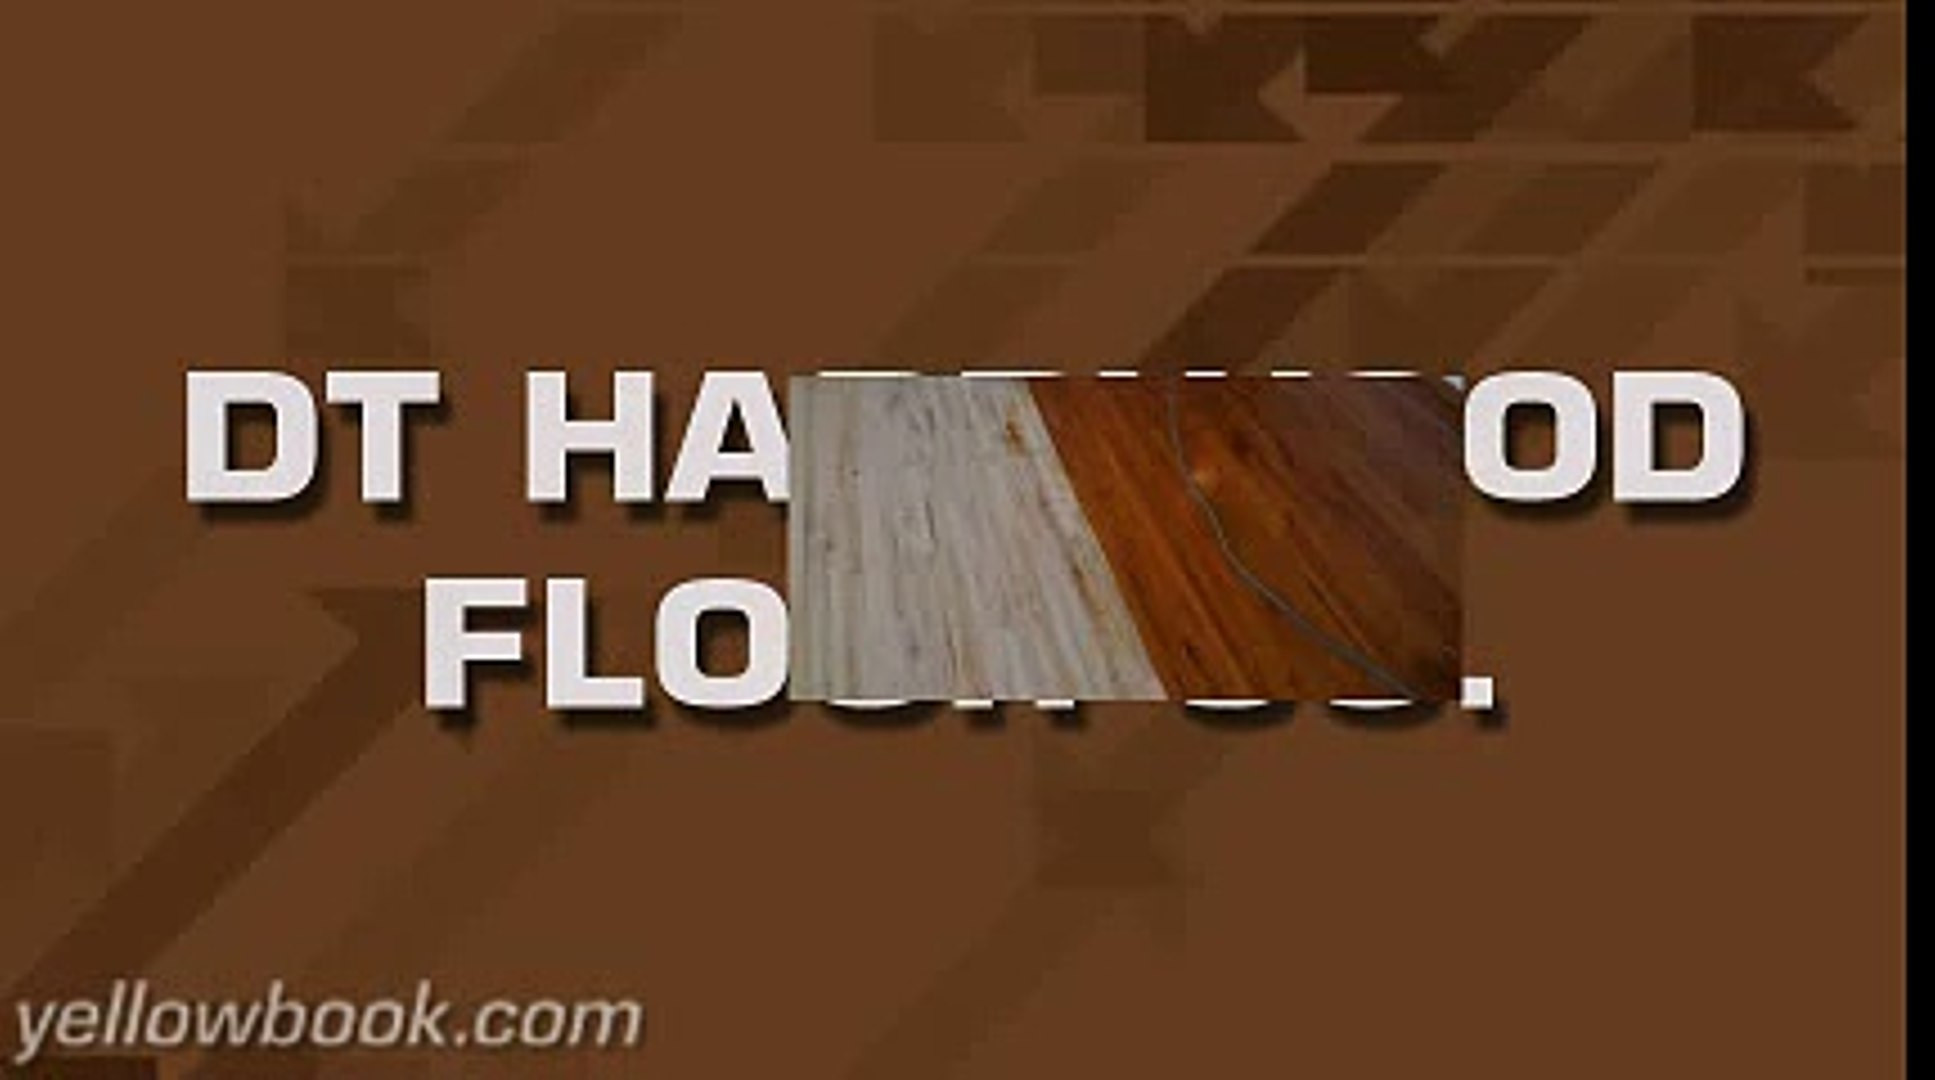 discount hardwood flooring toronto of dt hardwood floor co philadelphia pa video dailymotion throughout x1080 qdt